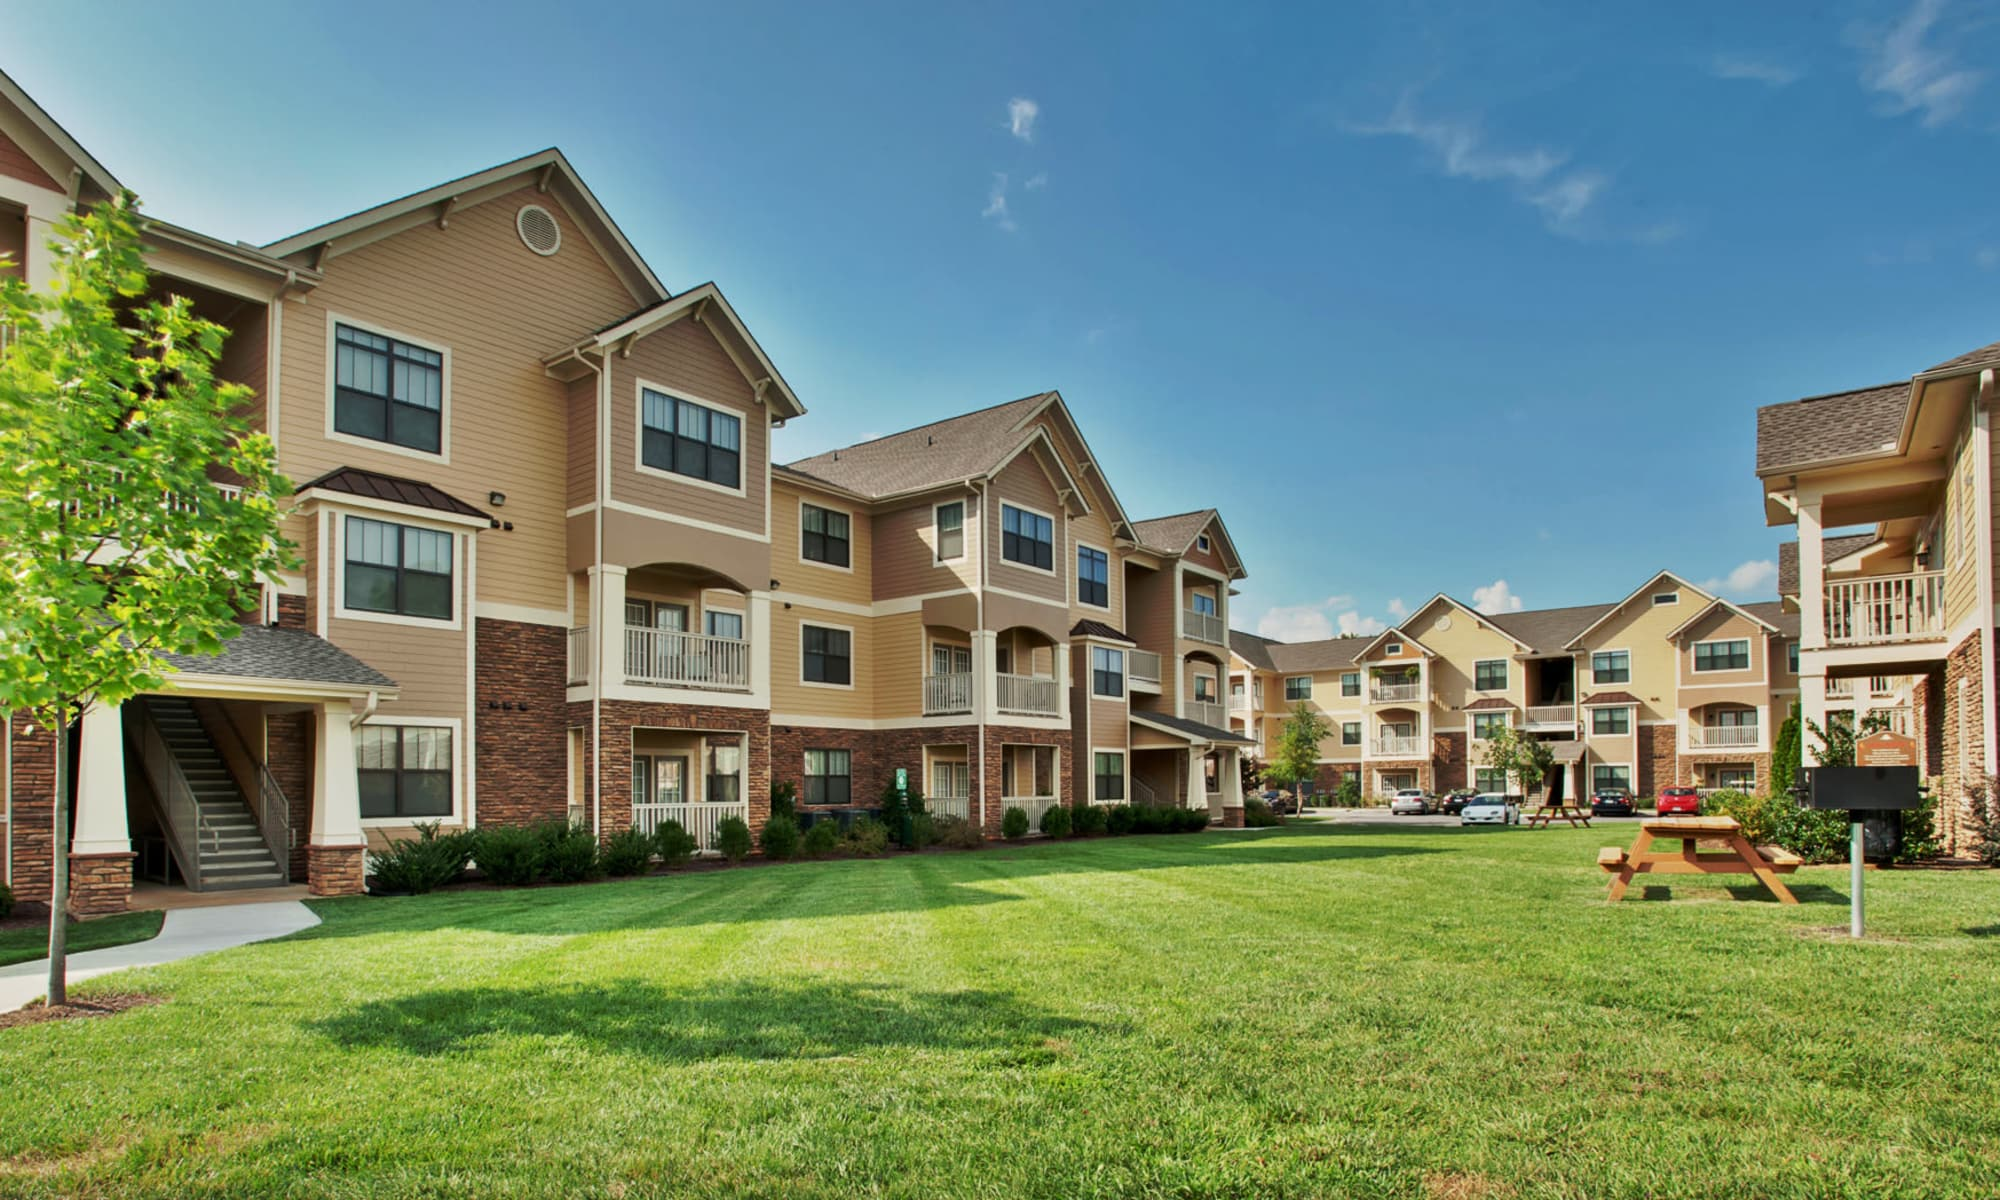 Apartments at Richland Falls in Murfreesboro, Tennessee